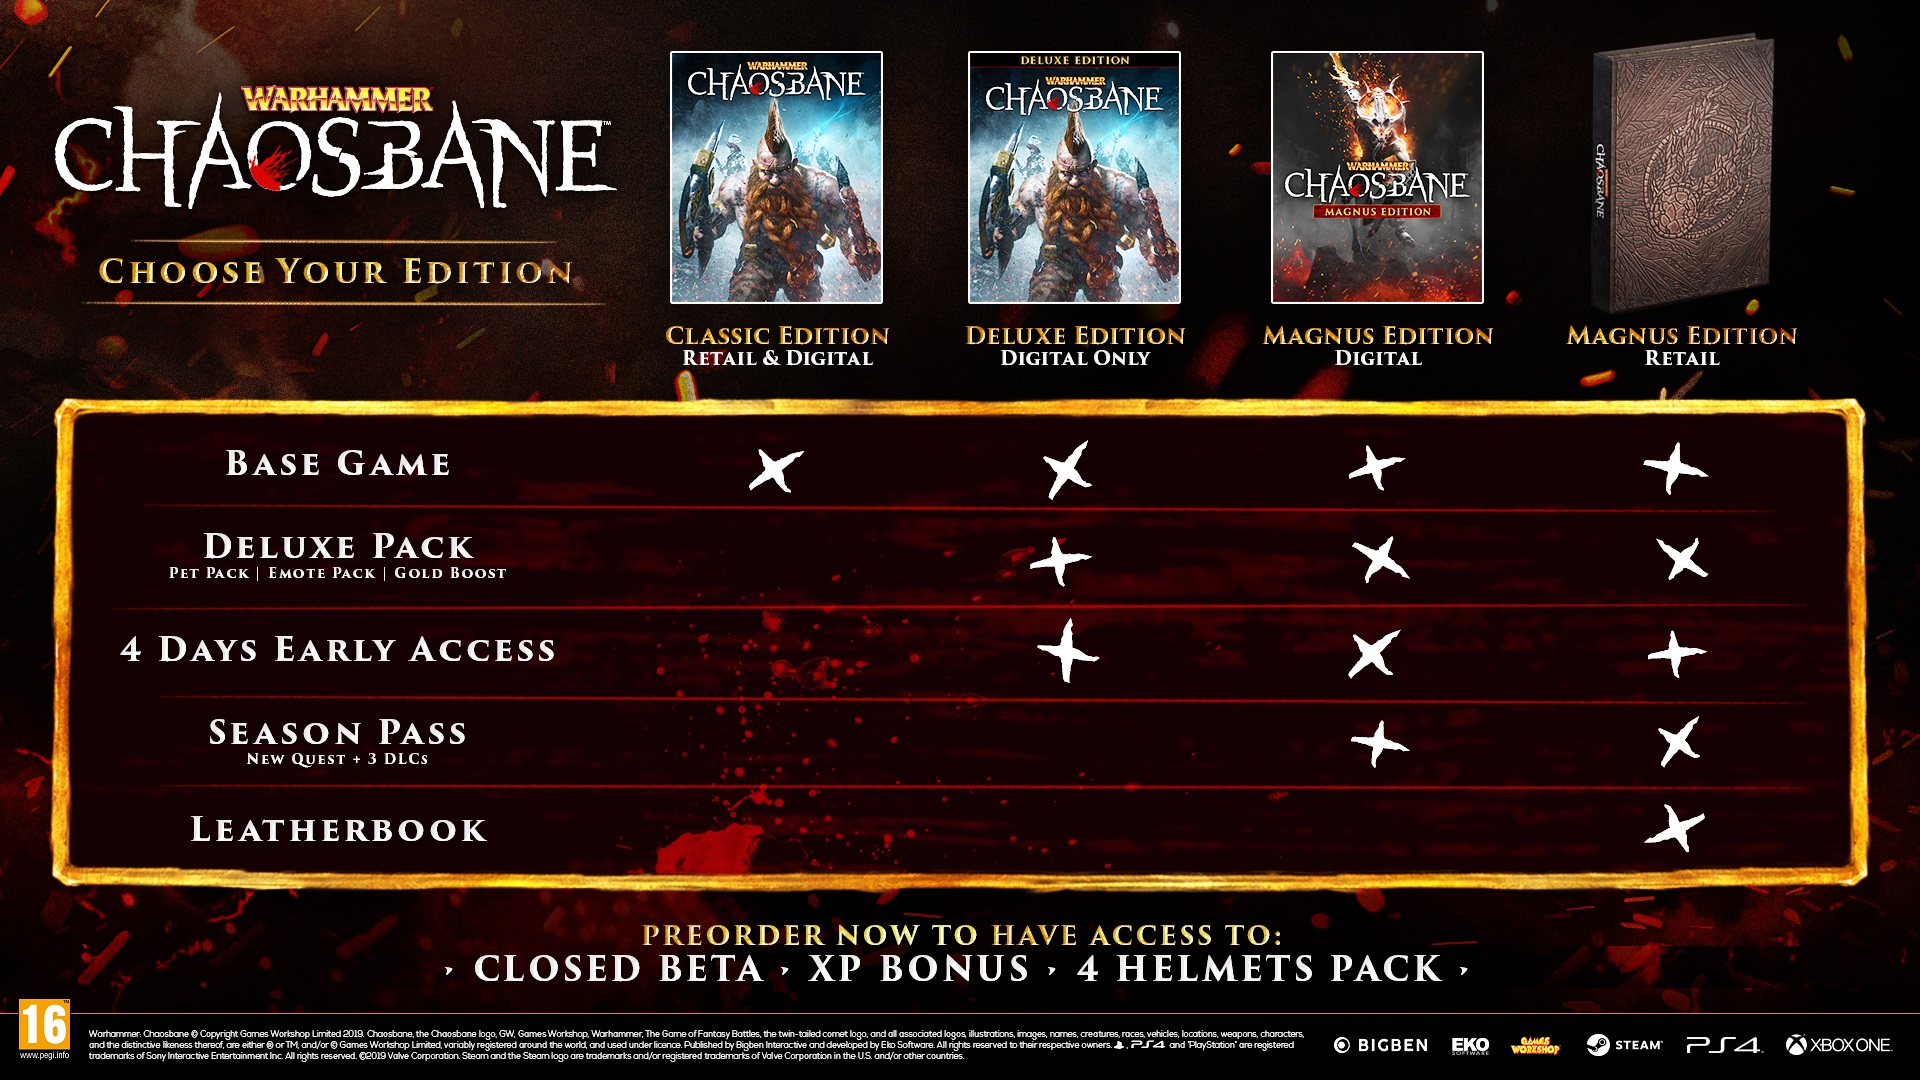 Warhammer Chaosbane Comparative Editions Infographic